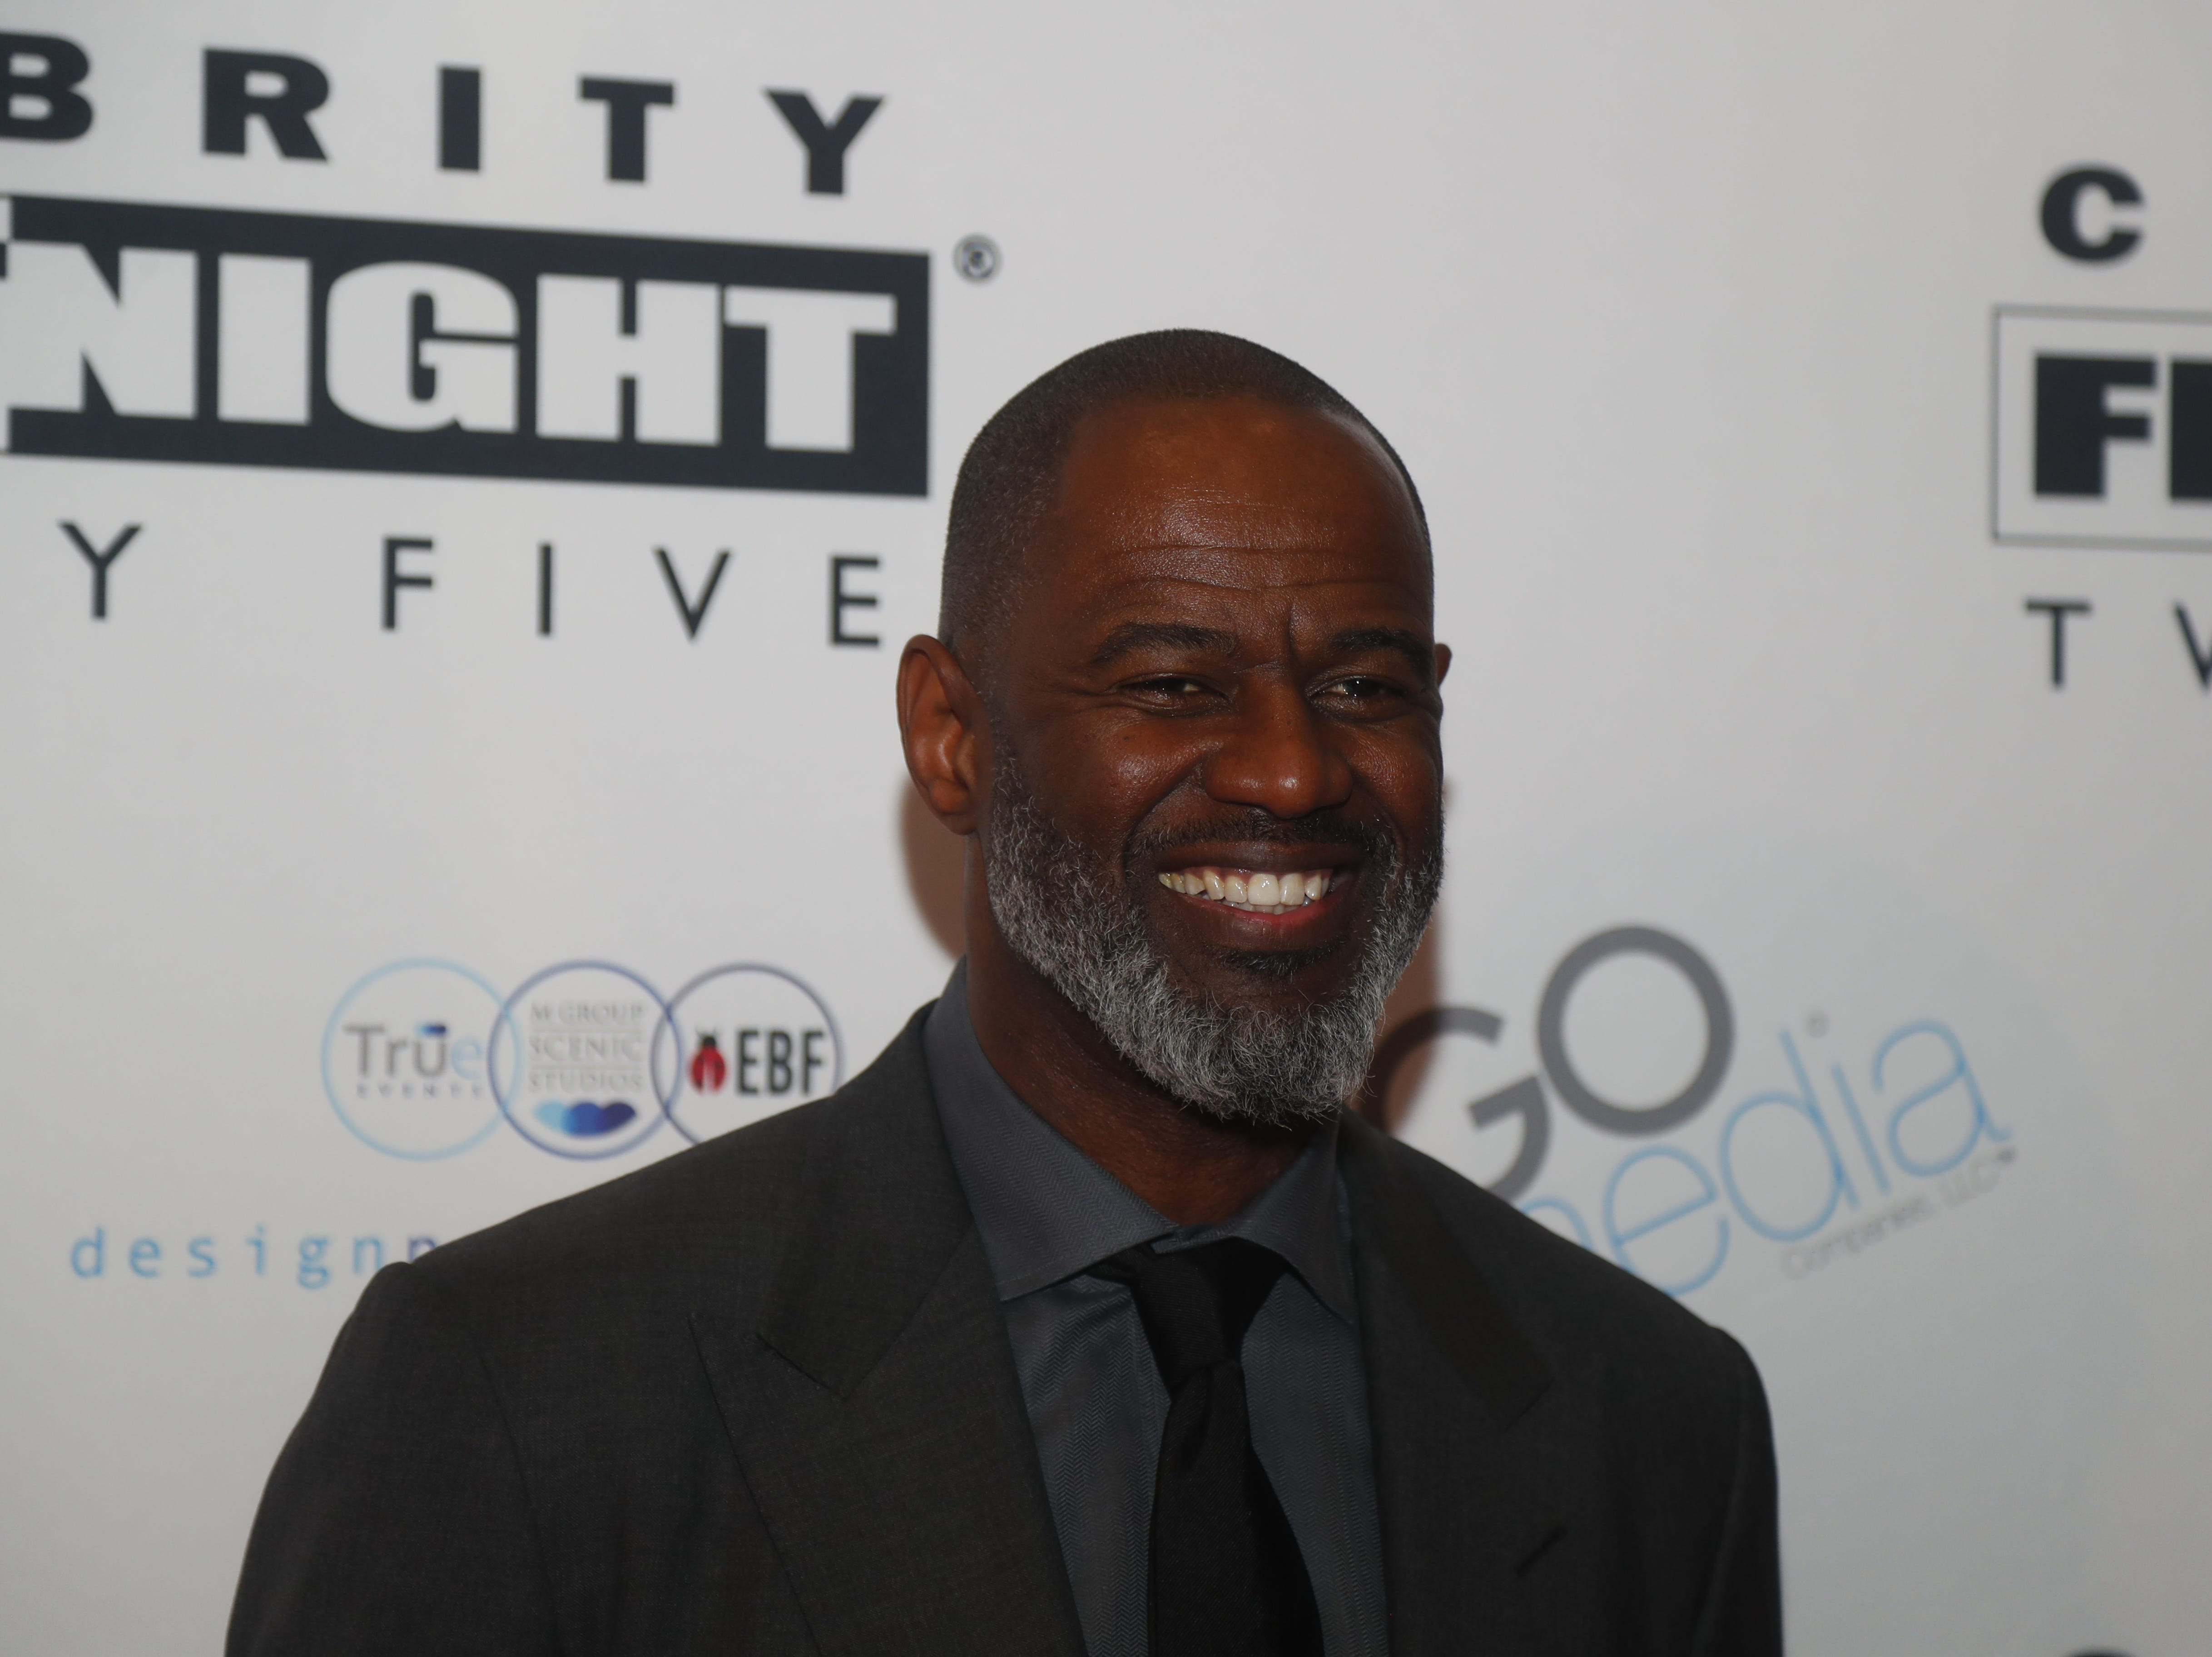 Brian McKnight poses for pictures during the Celebrity Fight Night red carpet in Scottsdale, Ariz., on March 23, 2019.